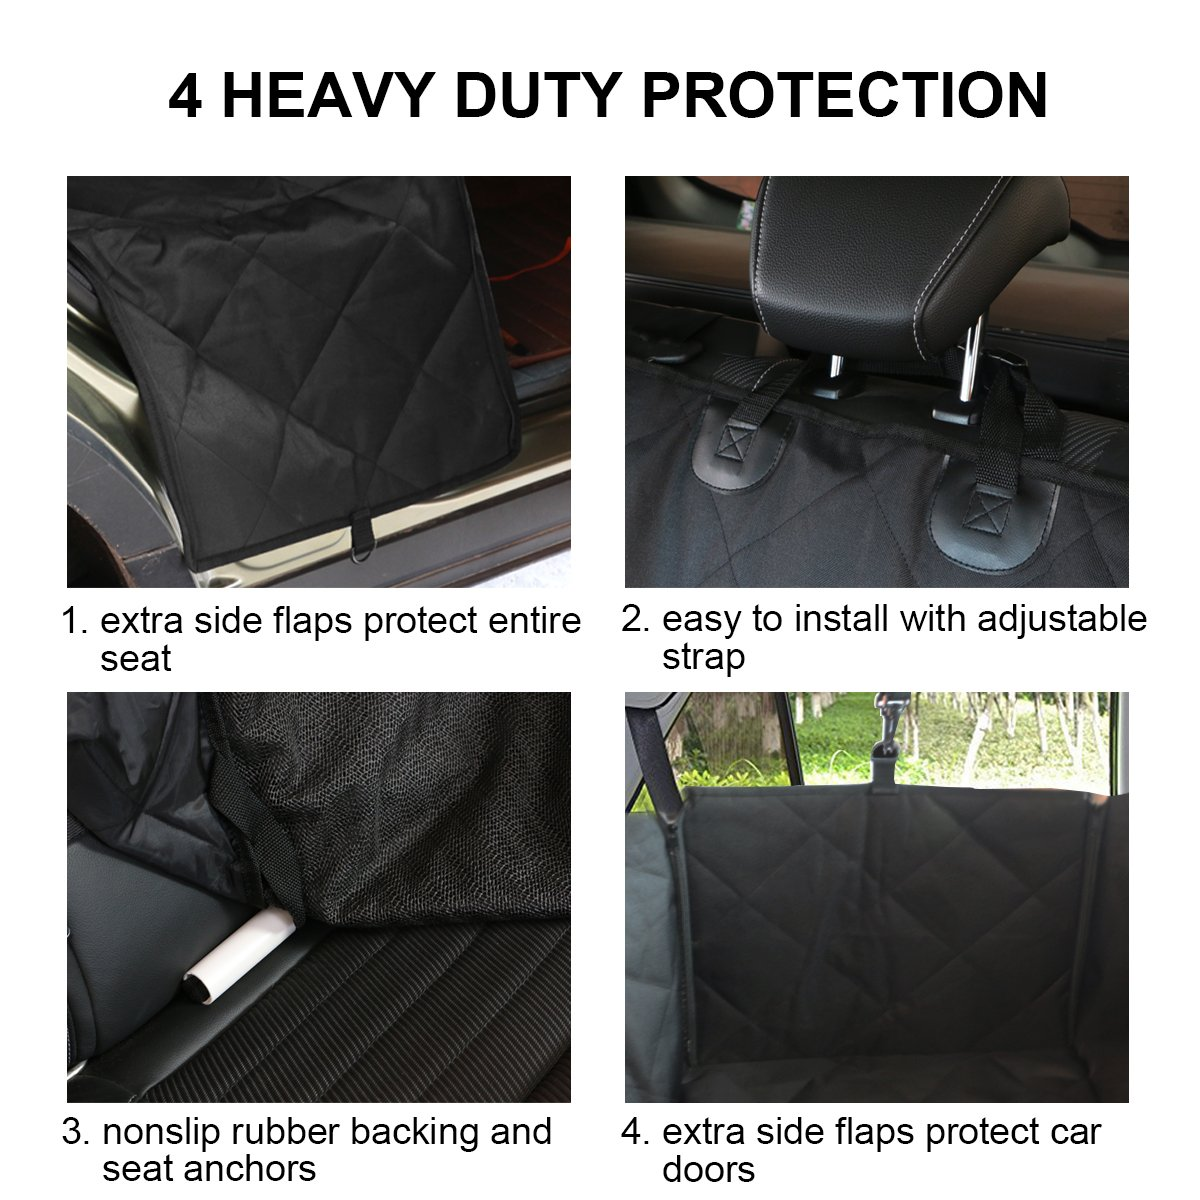 travel inspira Dog Seat Cover for Pets Large Pet Car Back Seat Covers Hammock Cars SUVs Trucks Water Resistant Nonslip with Car Rear Seat Backseat Protector & Side Flaps for Dogs by travel inspira (Image #3)